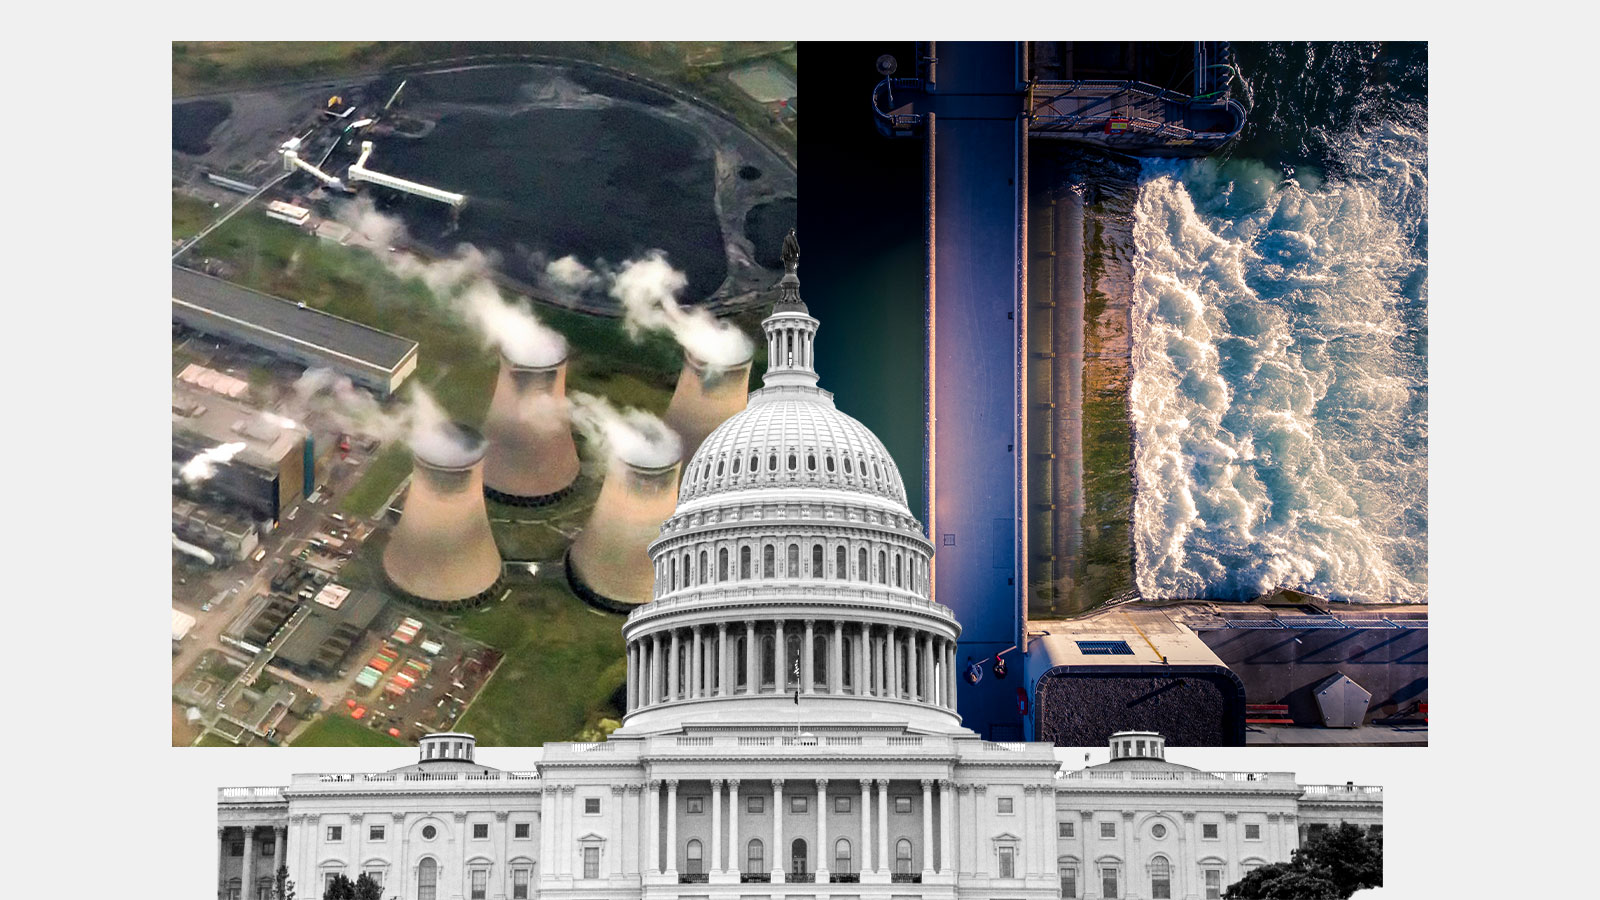 Capitol building in front of an image of nuclear cooling towers and a dam